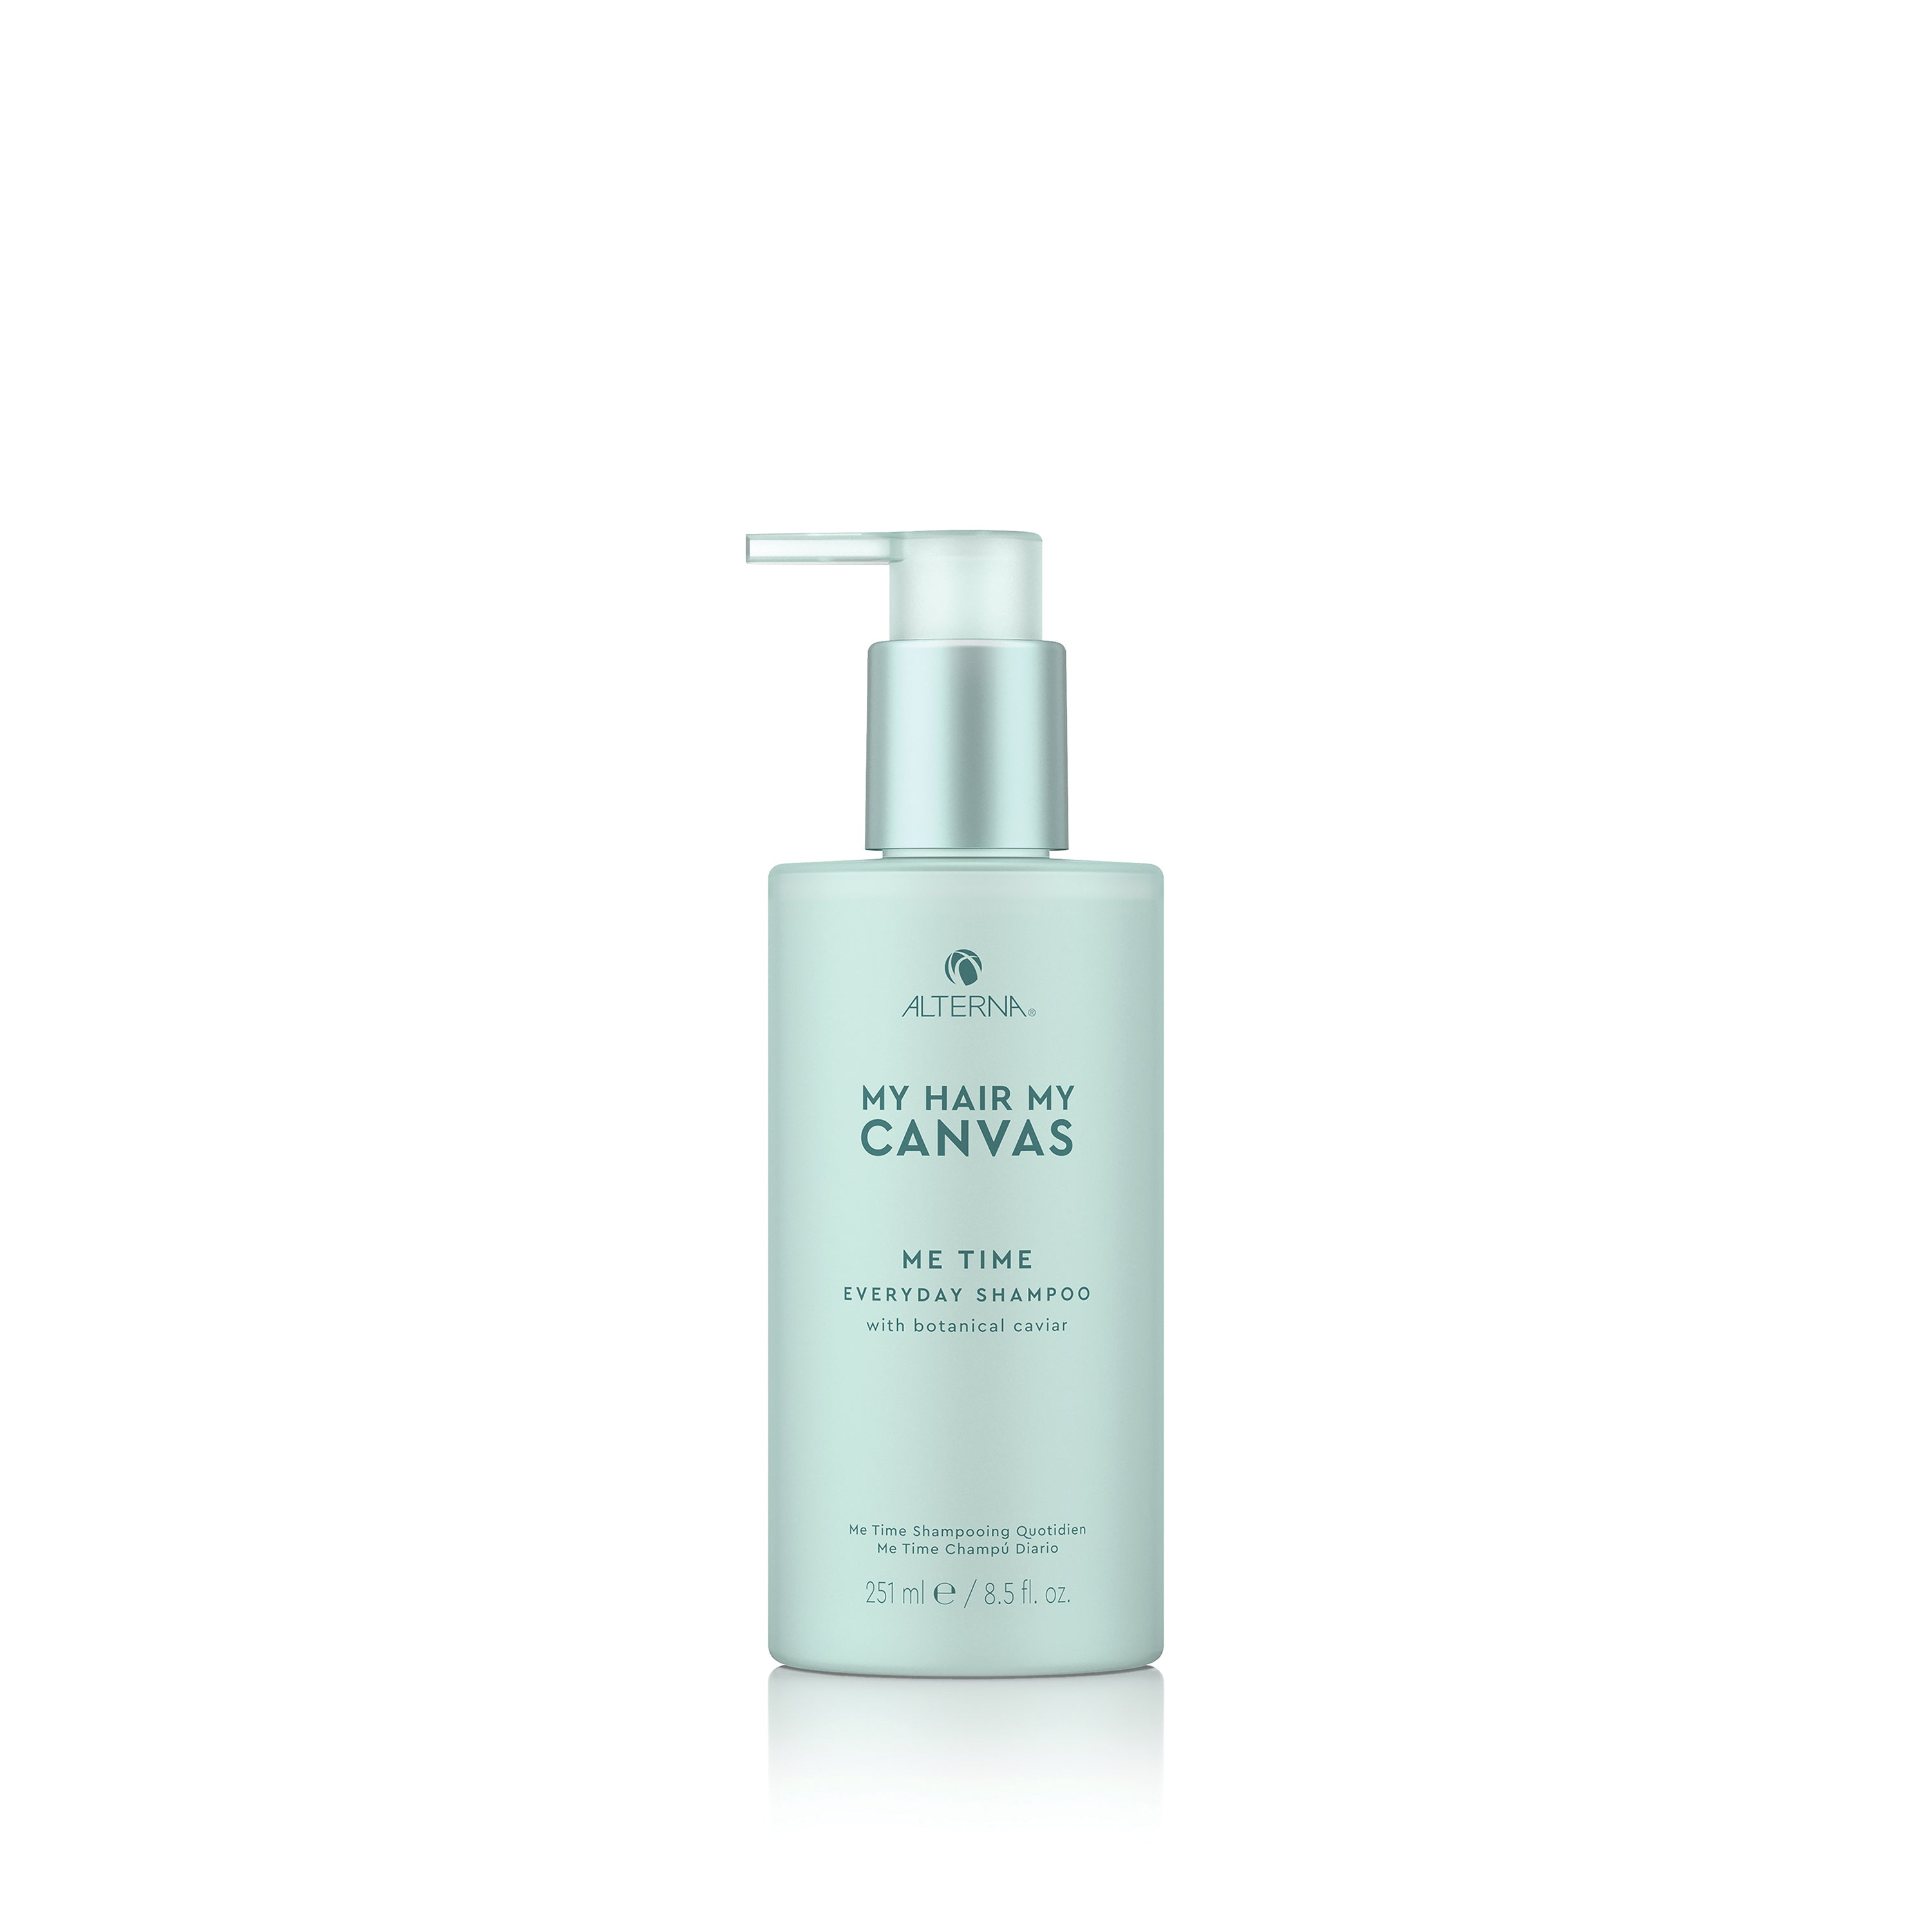 ALTERNA My Hair My Canvas Me Time Everyday Shampoo 251 ml